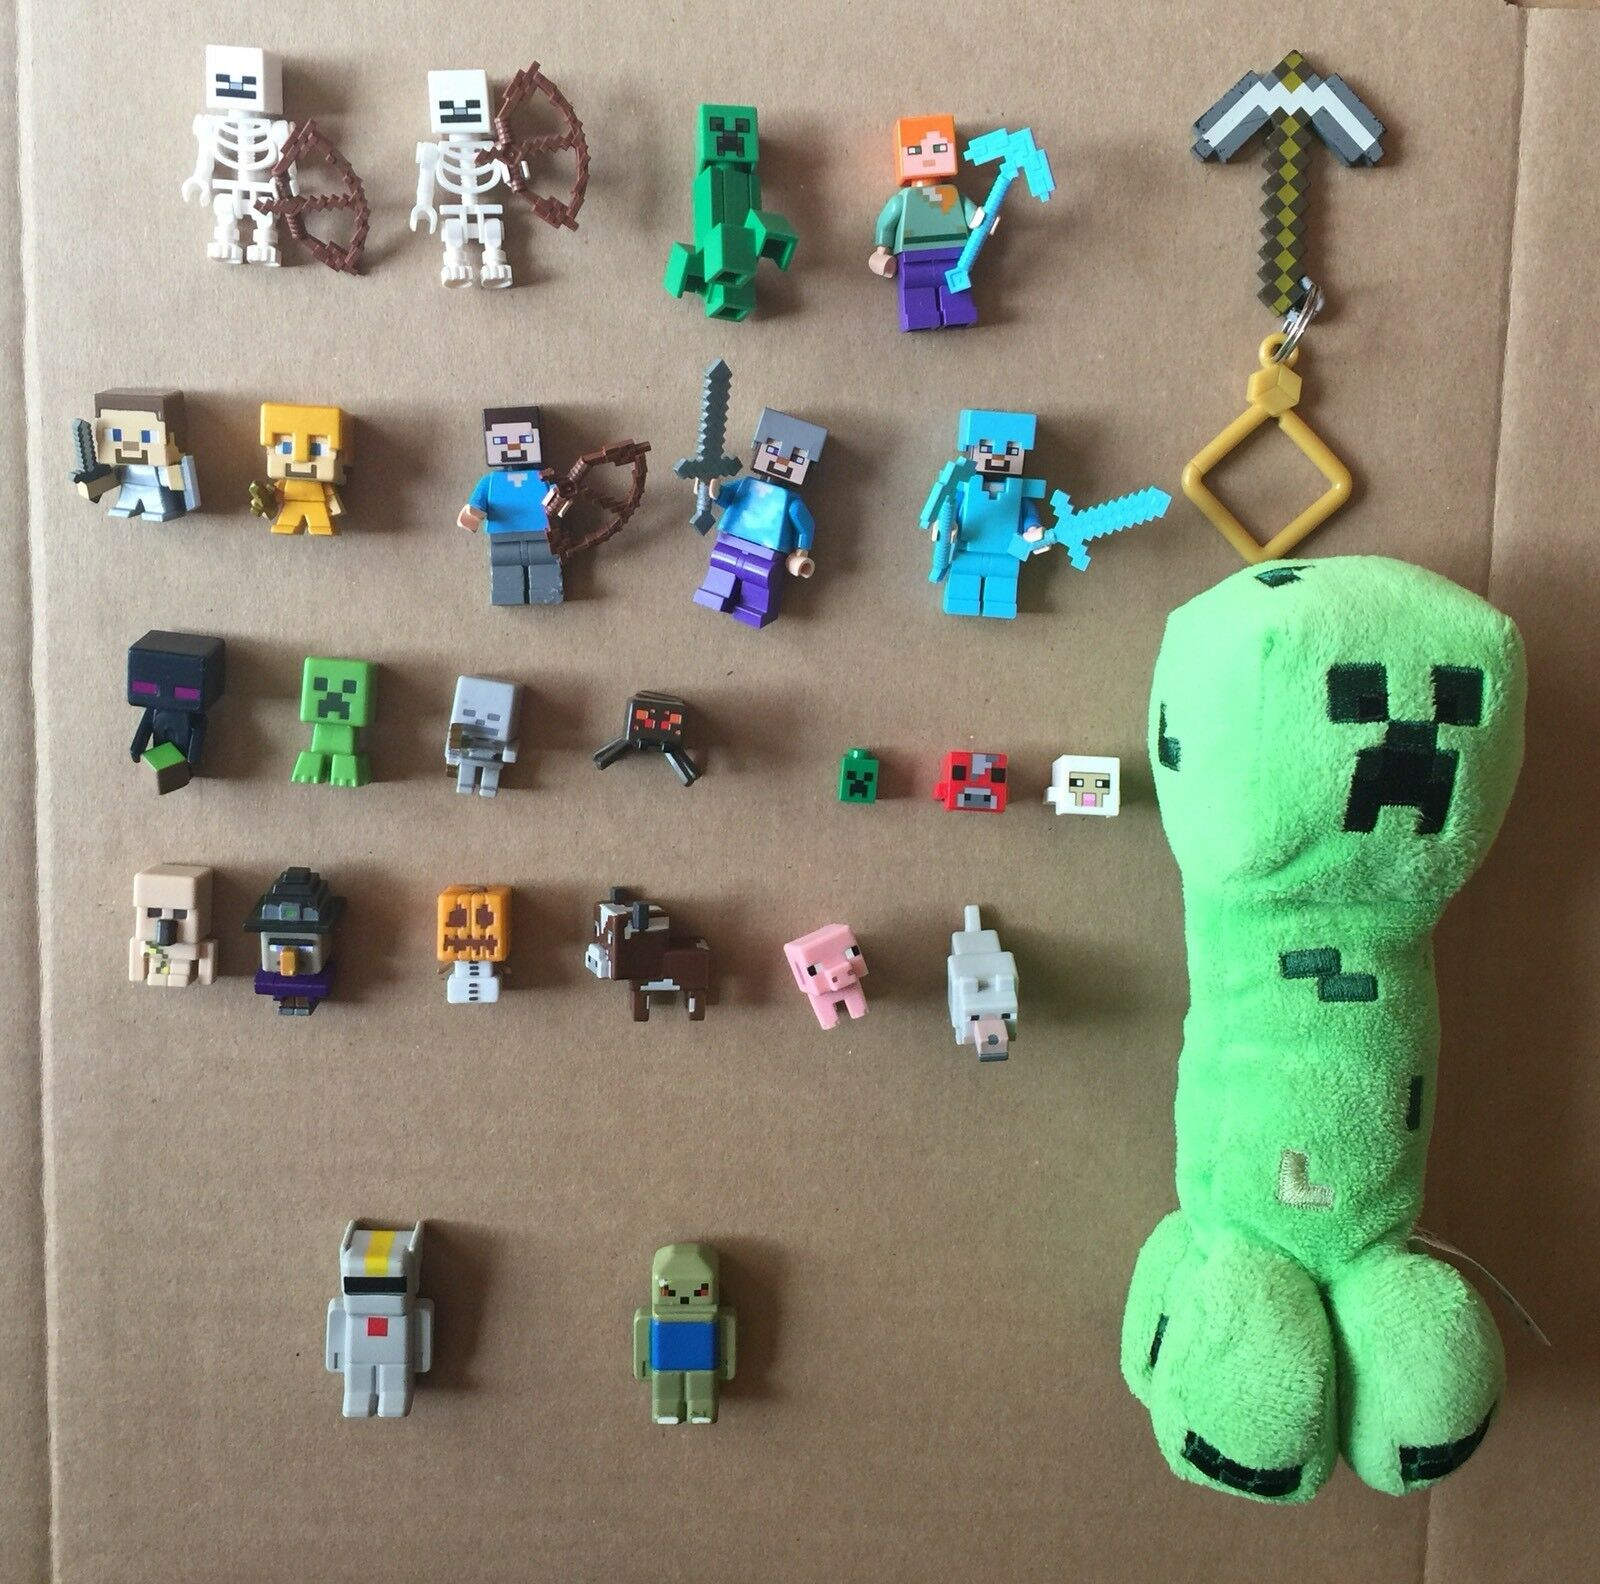 Minecraft and Terreria Figurines and Plush Creeper